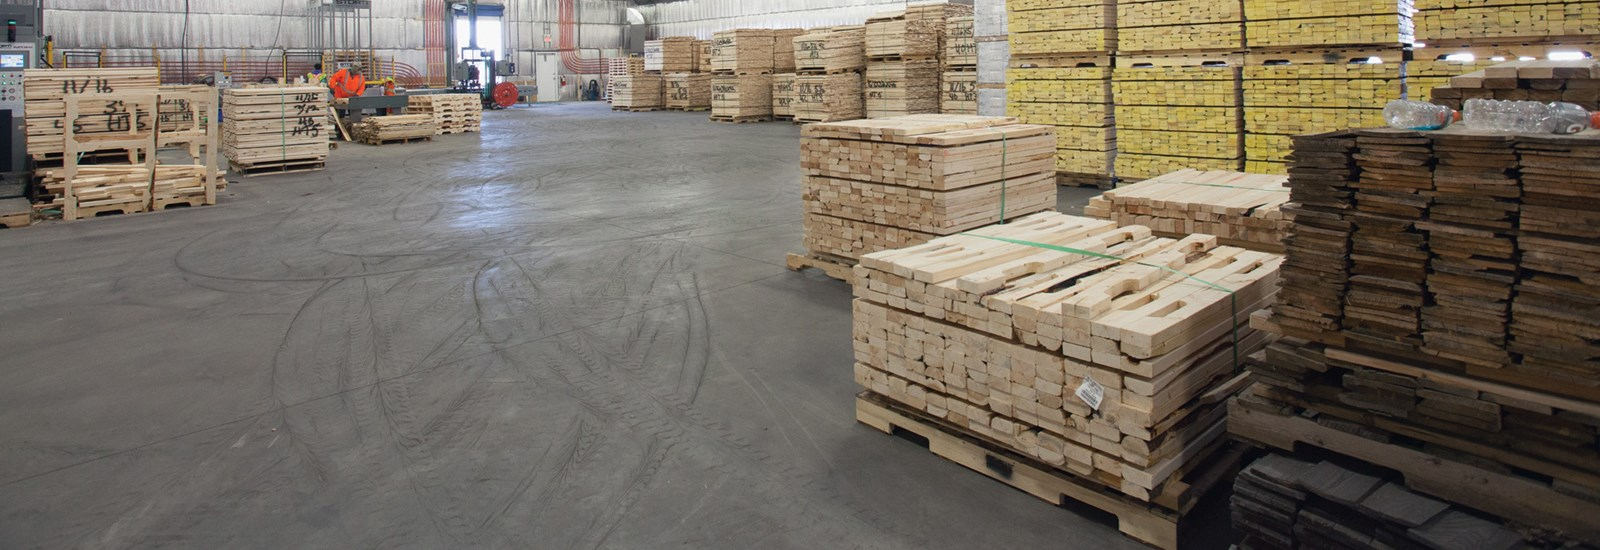 warehouse-north-star-pallets